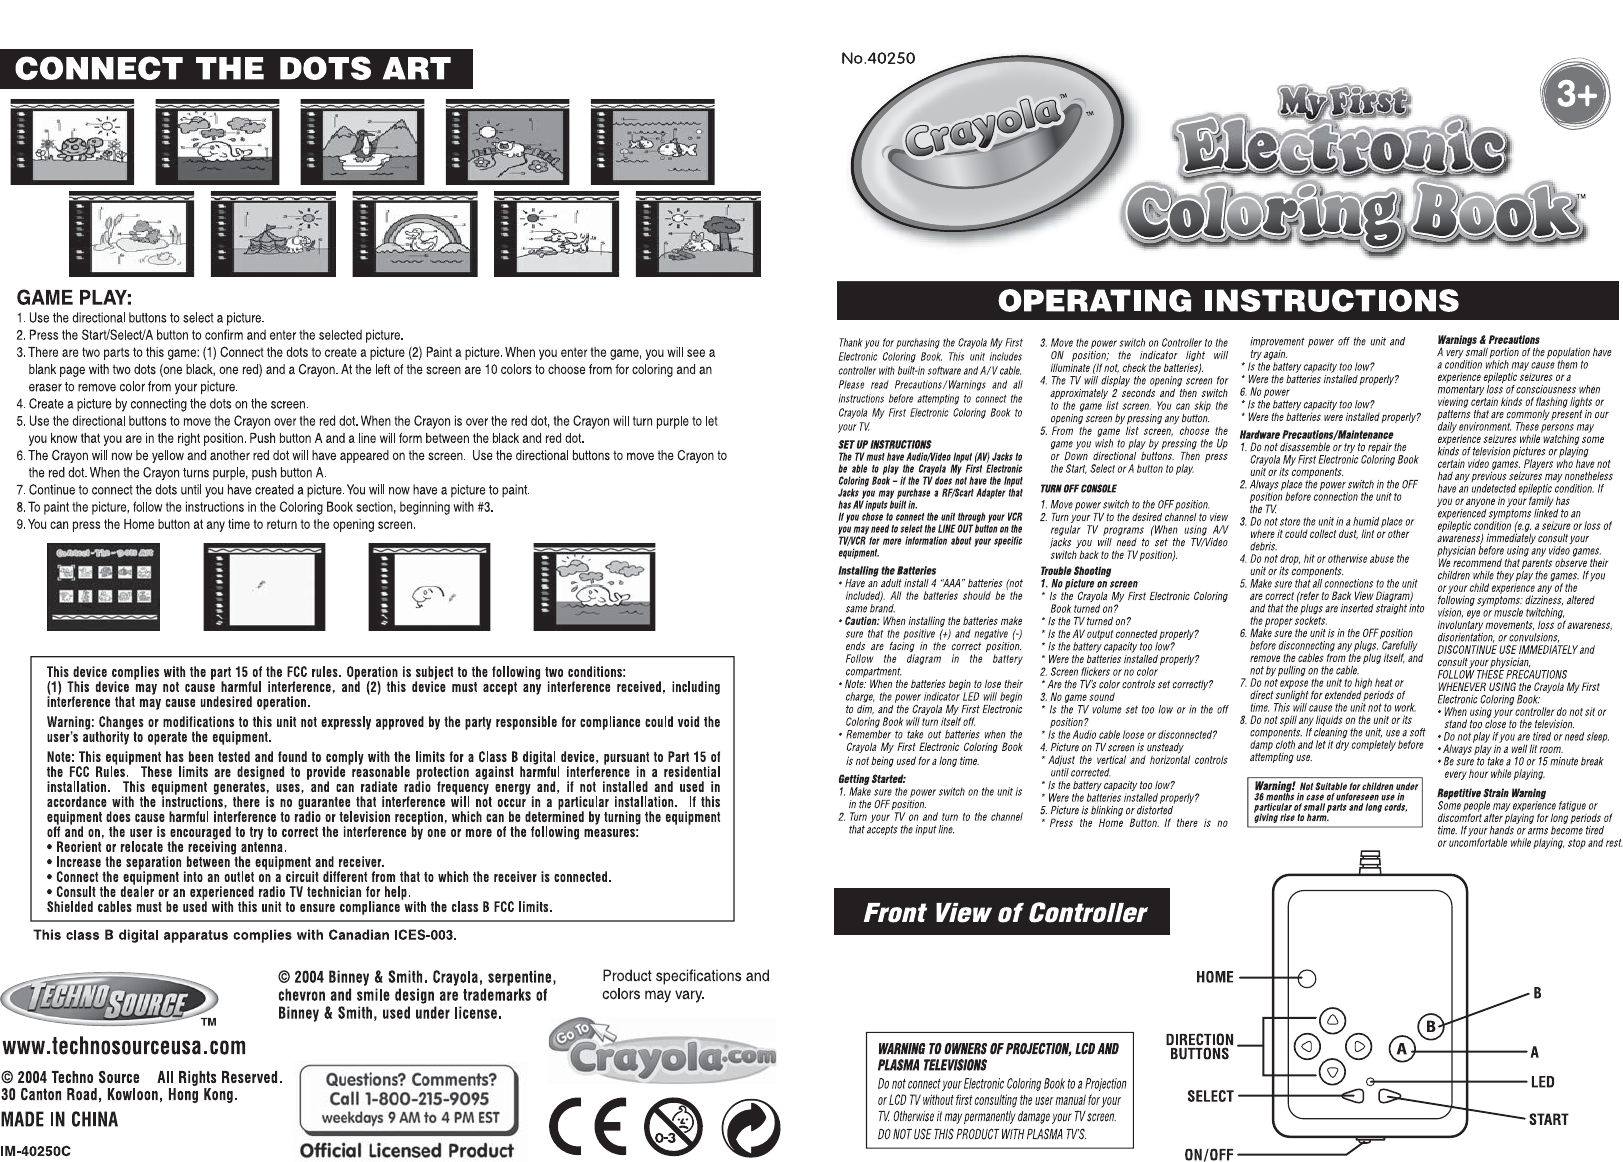 Coloring book with guide - Techno Source My First Electronic Coloring Book Handheld Game System User Manual